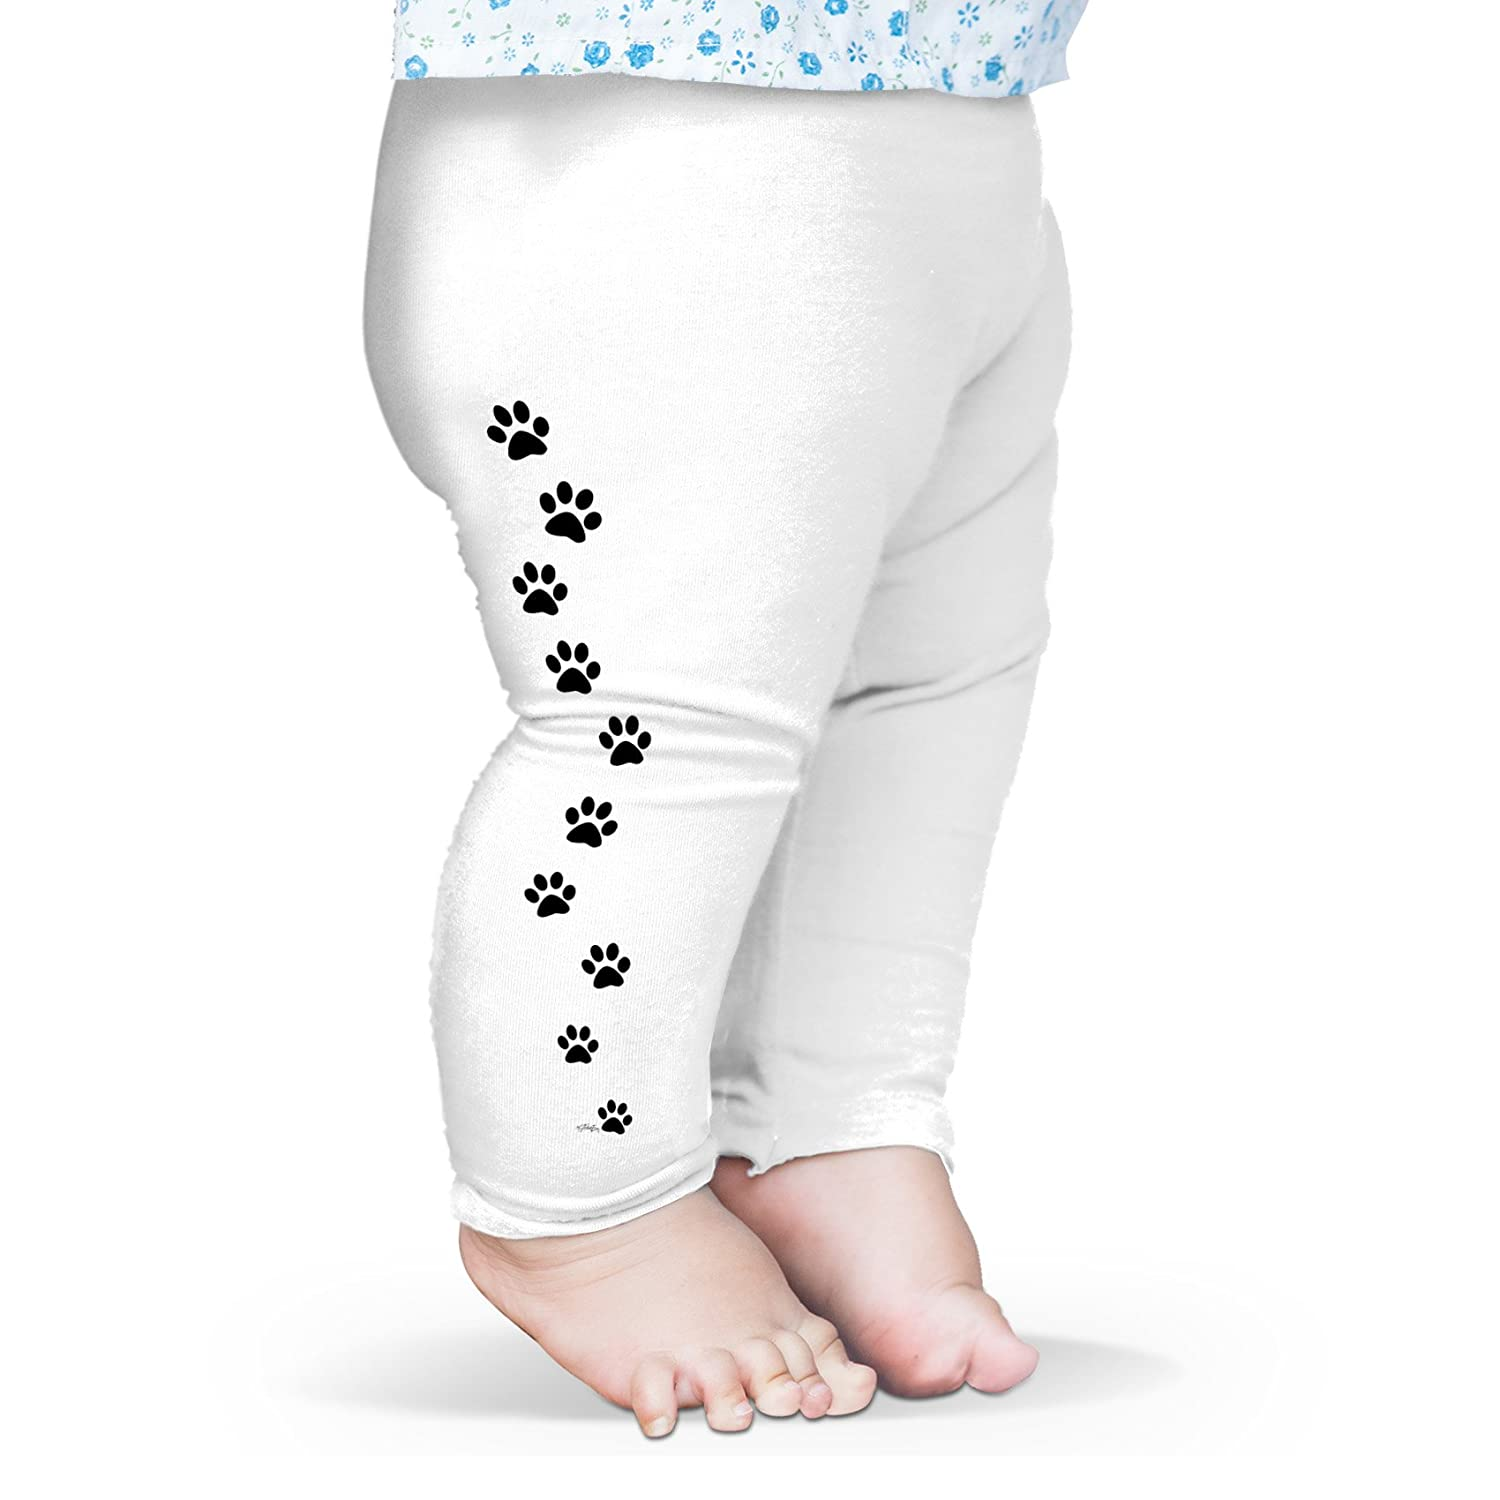 TWISTED ENVY Paw Prints Baby Printed Leggings Trousers